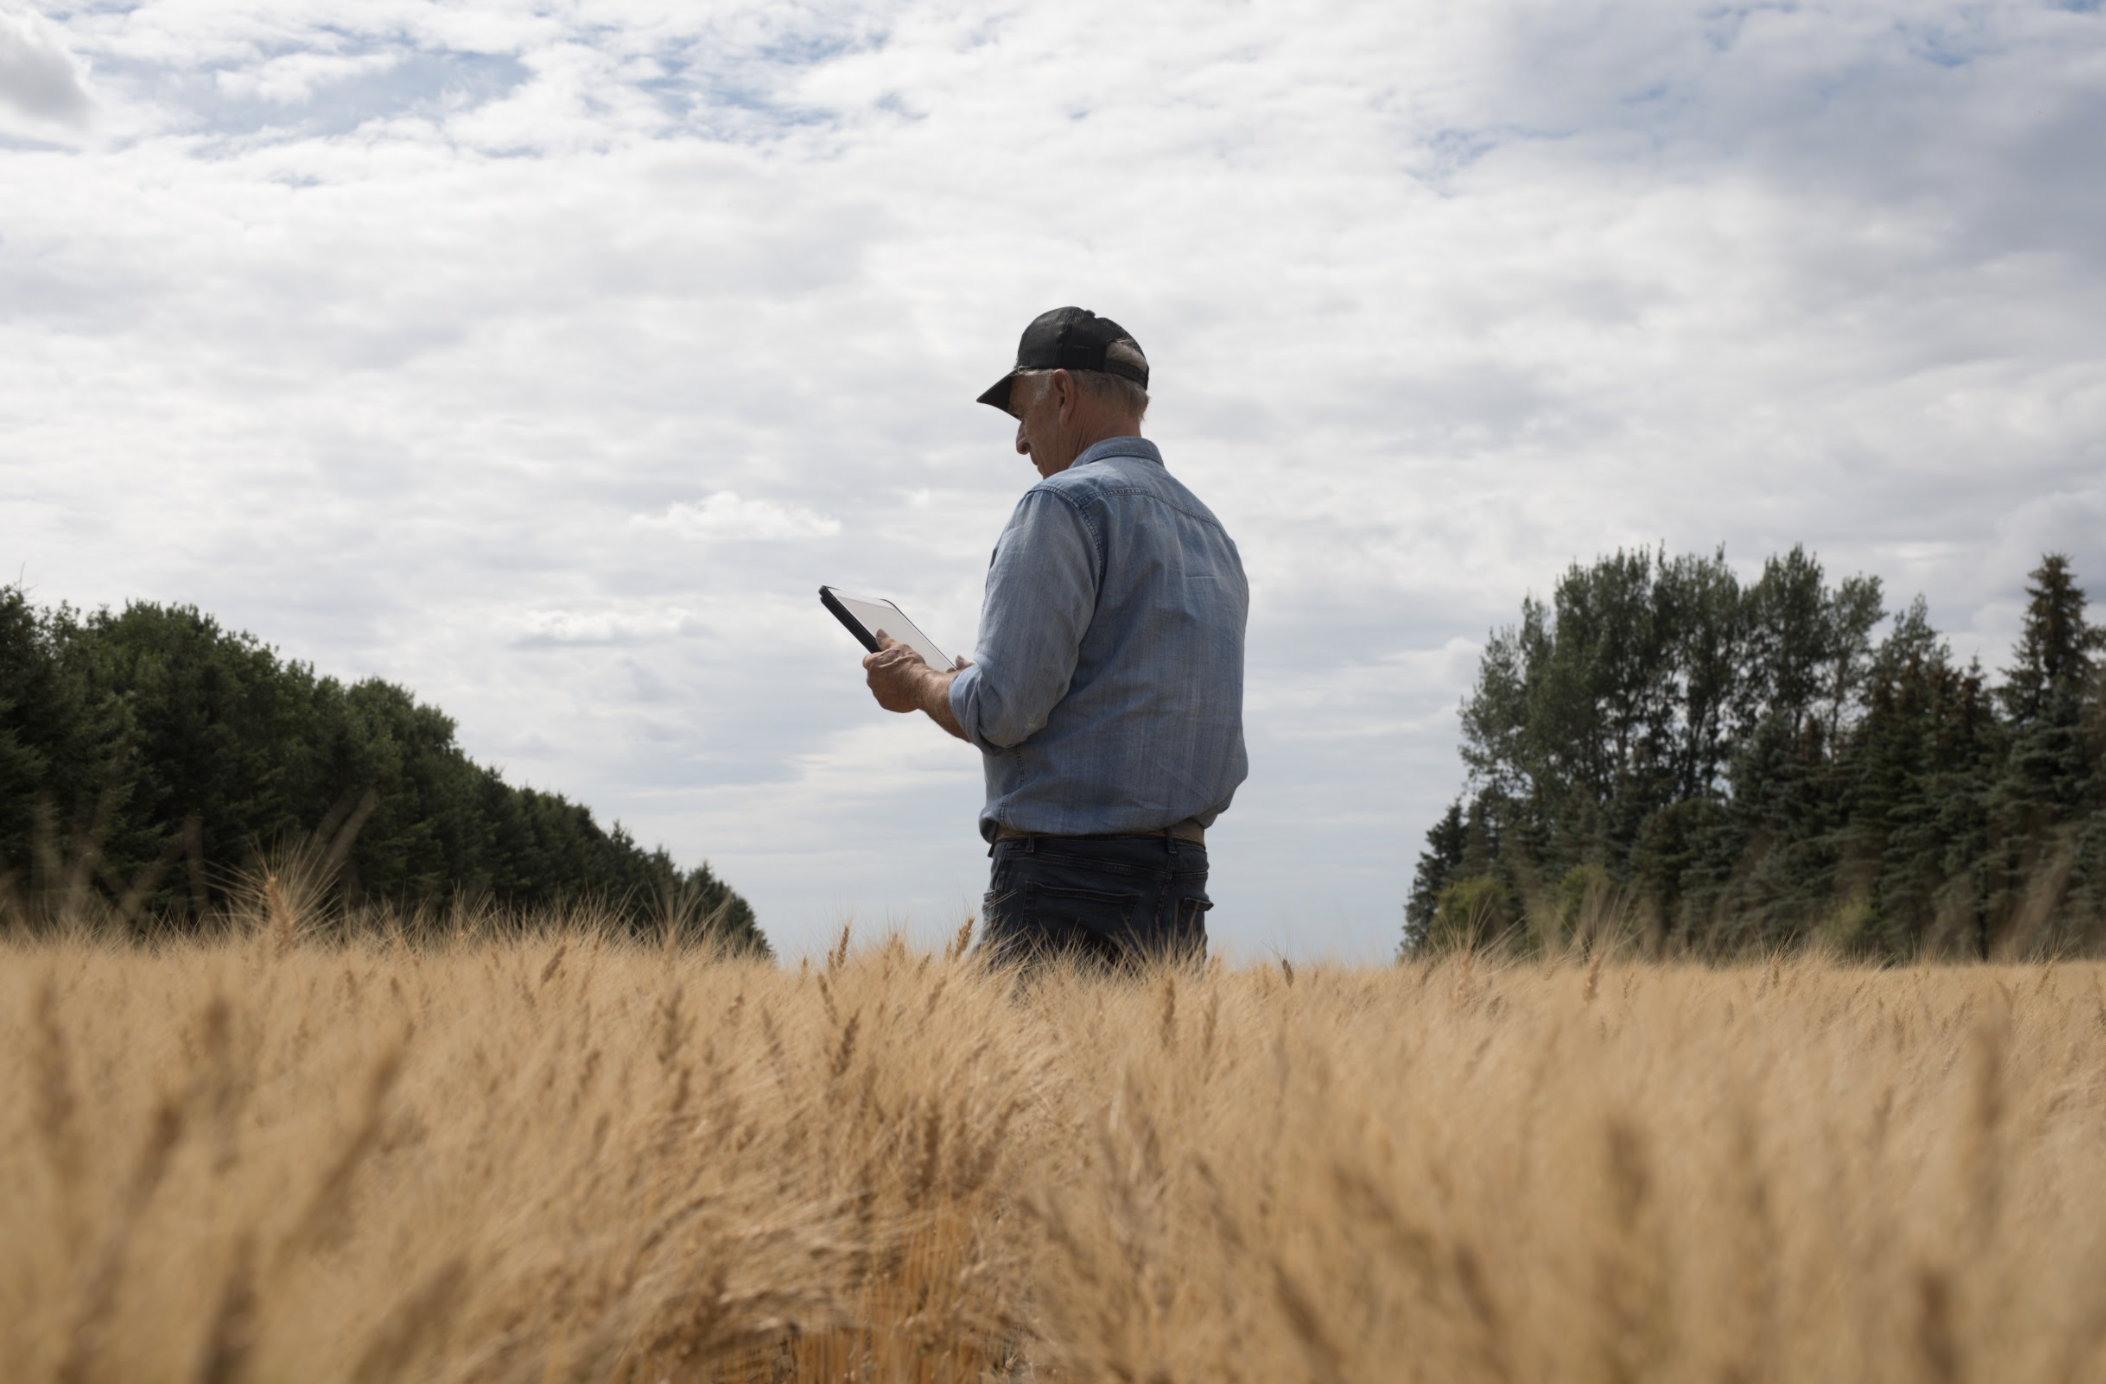 Old farmer in a field looking at his ipad.